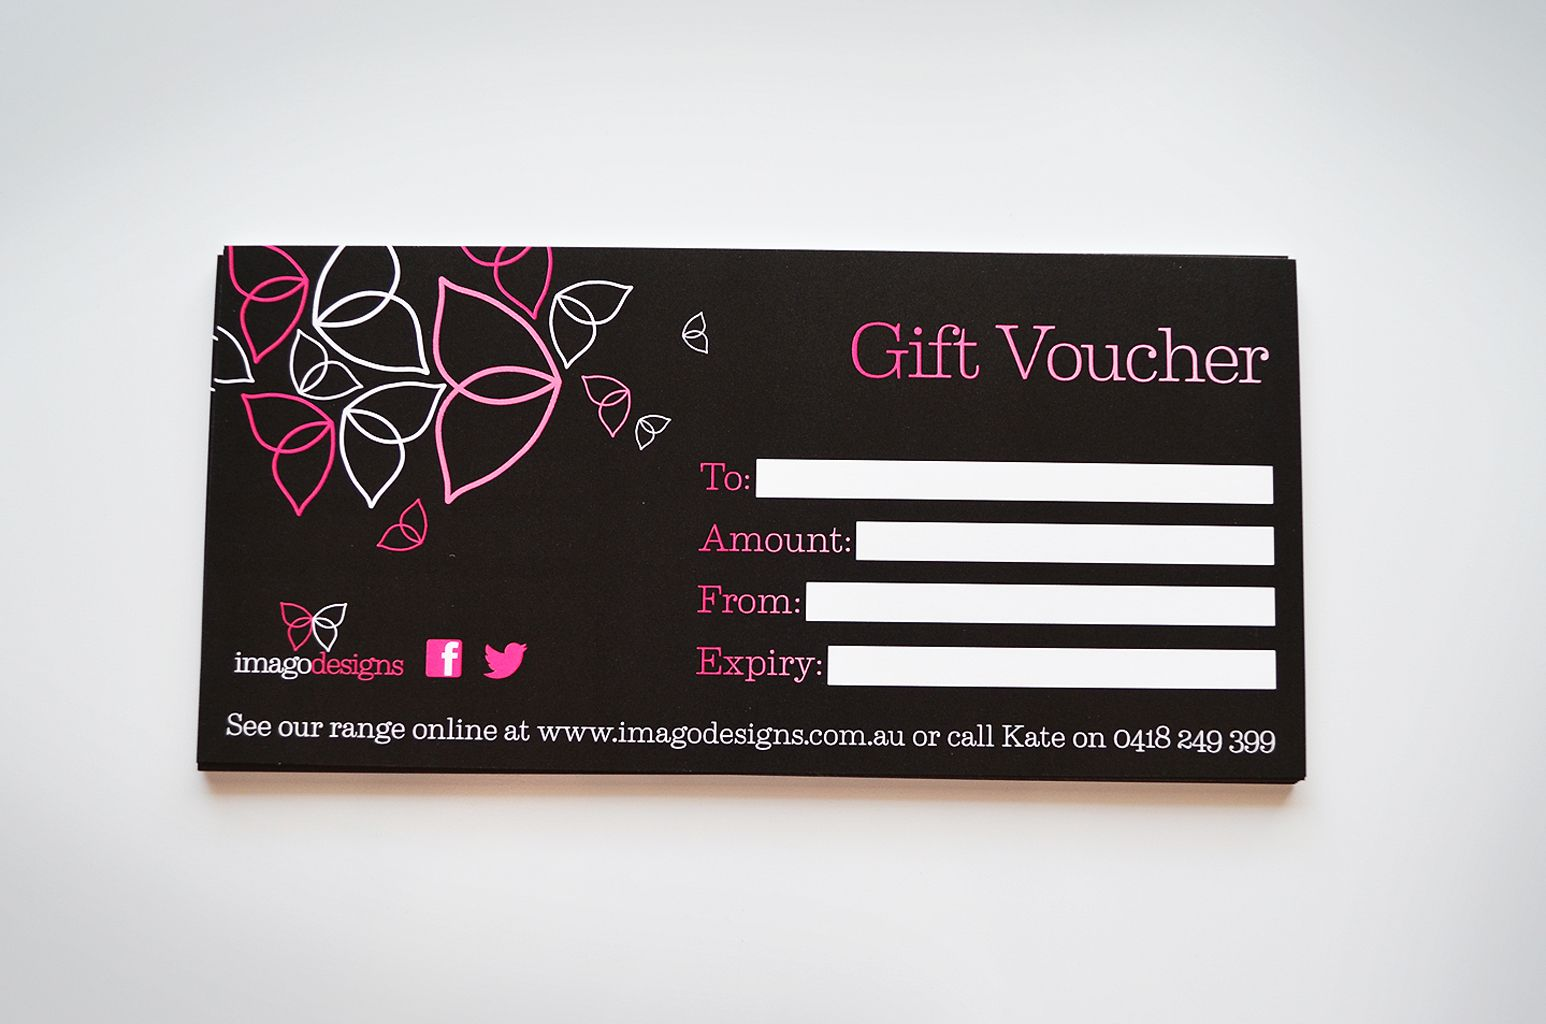 Jewellery gift voucher designs - Branding package for @Imago Designs ...